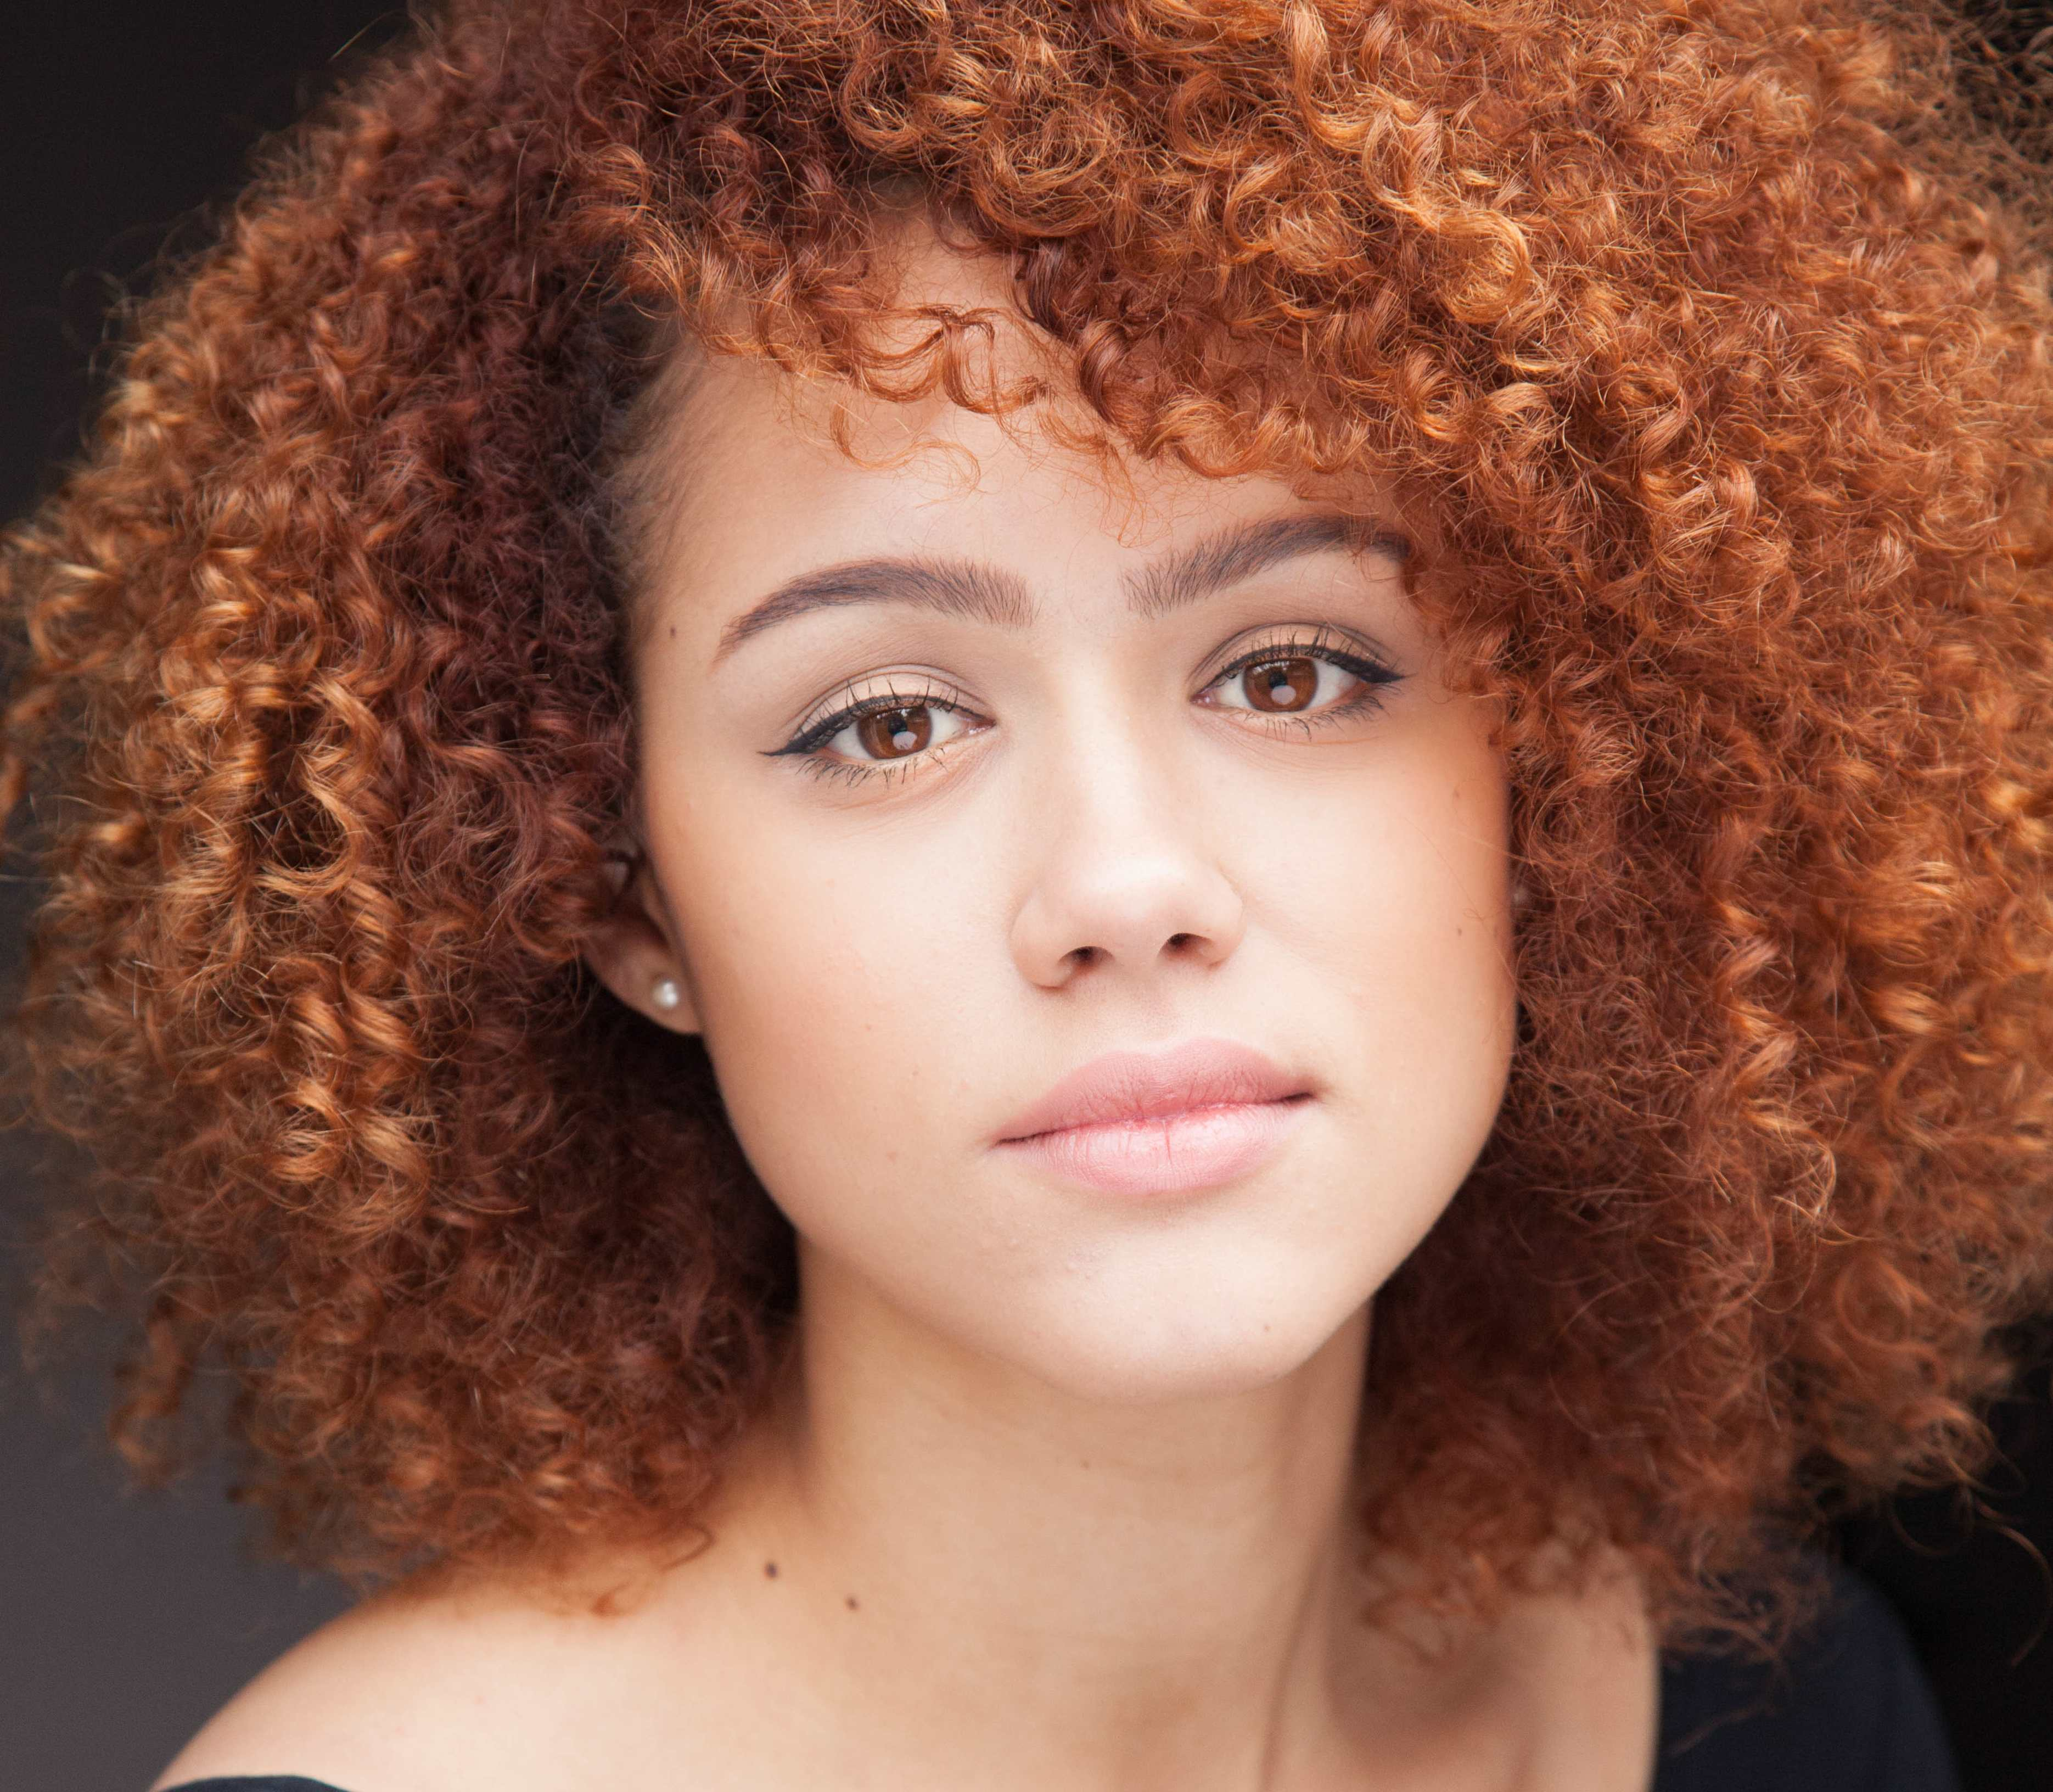 Nathalie Emmanuel HD Wallpapers